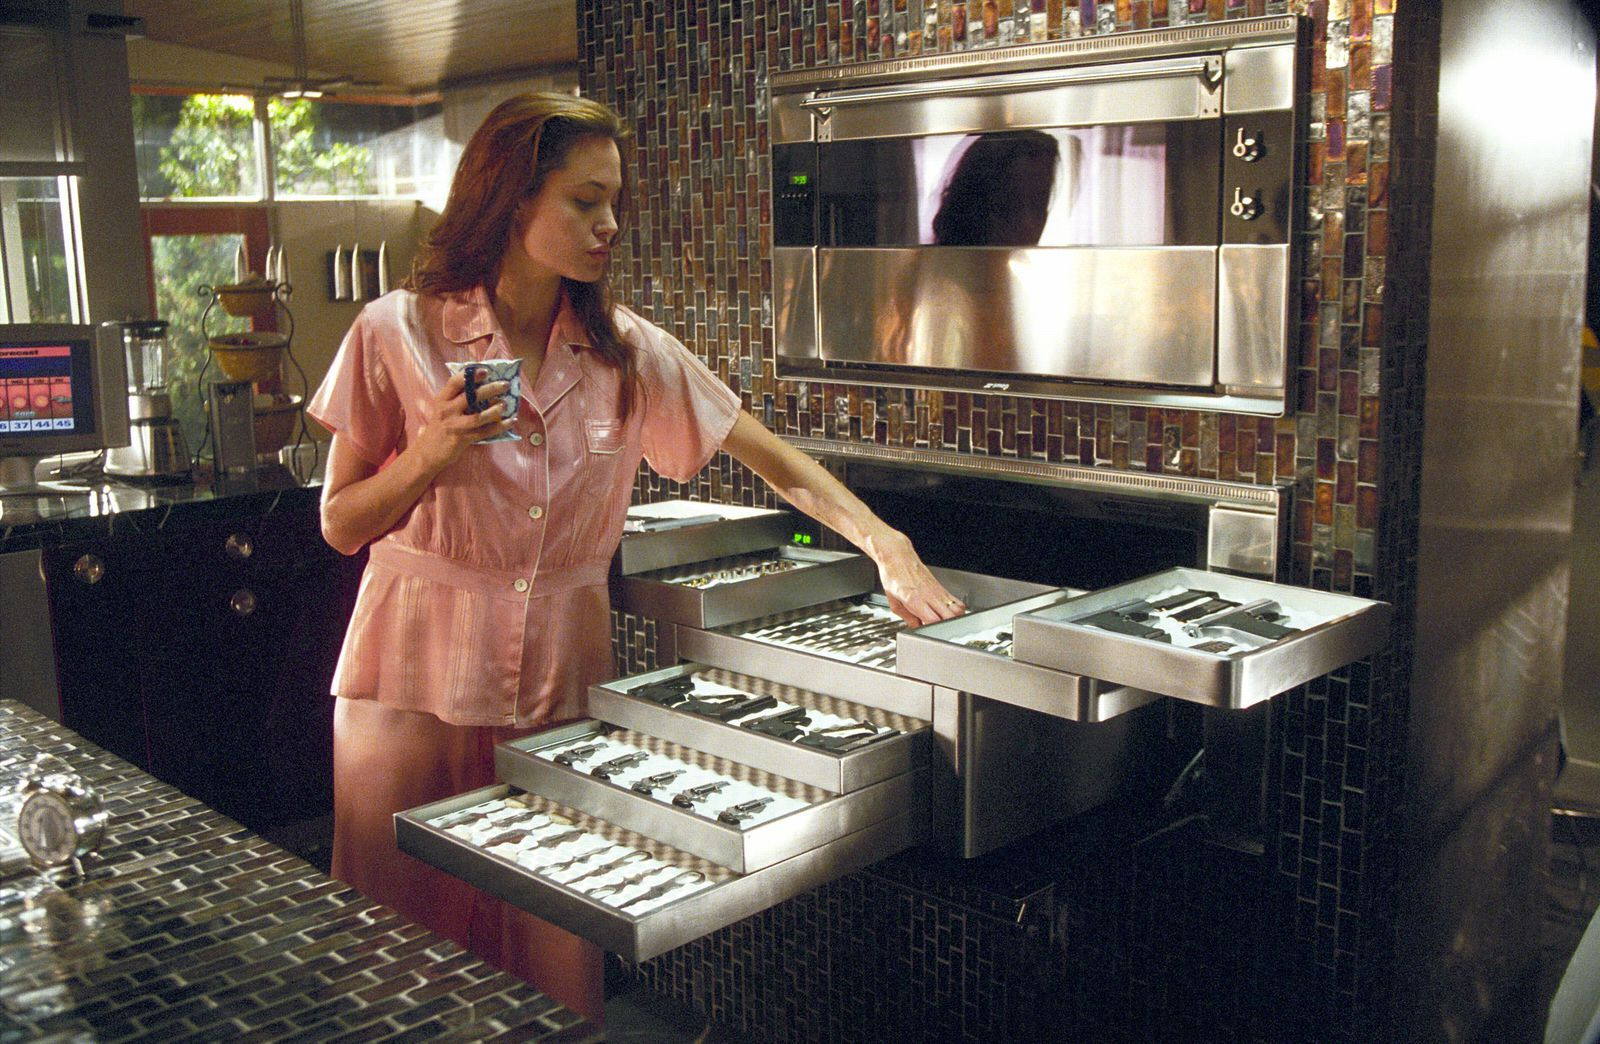 Mr And Mrs Smith Kitchen 23 hollywood kitchens that will inspire your next redo | mr